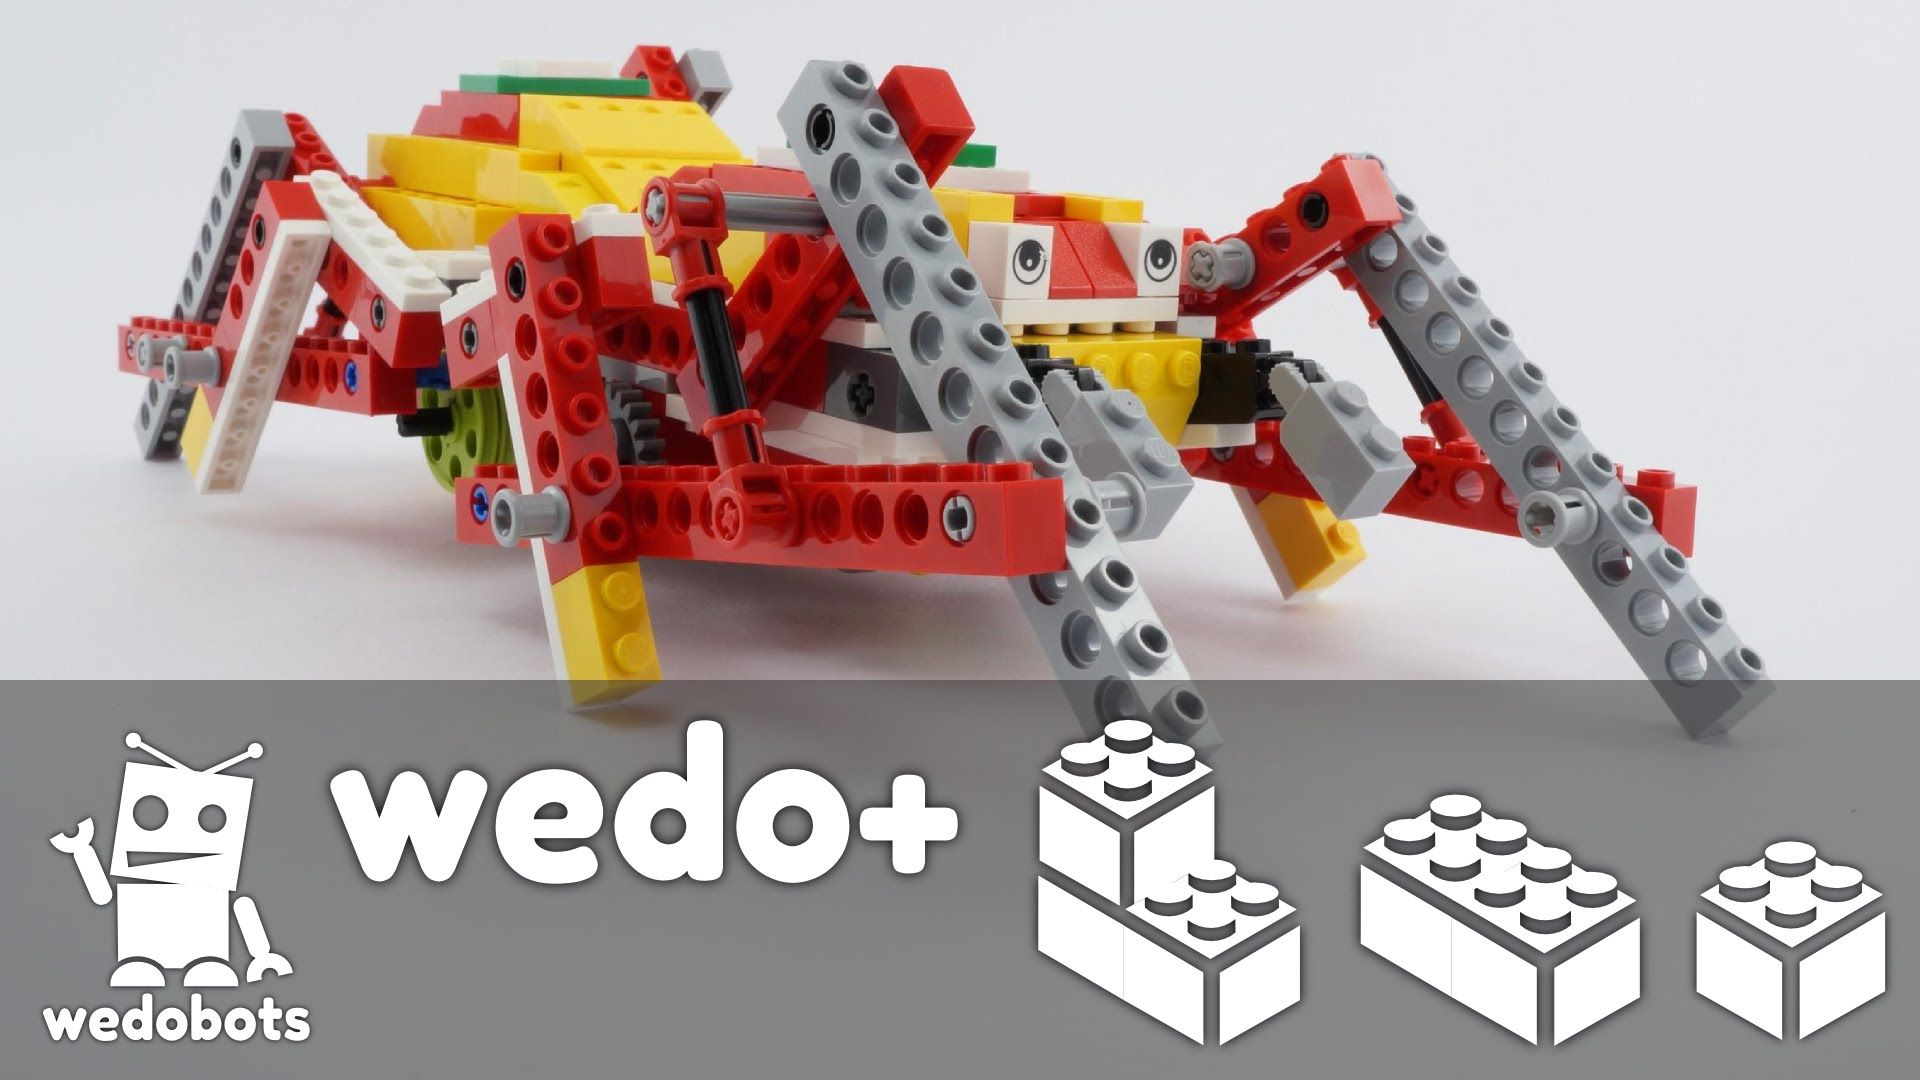 lego wedo 2.0 instructions